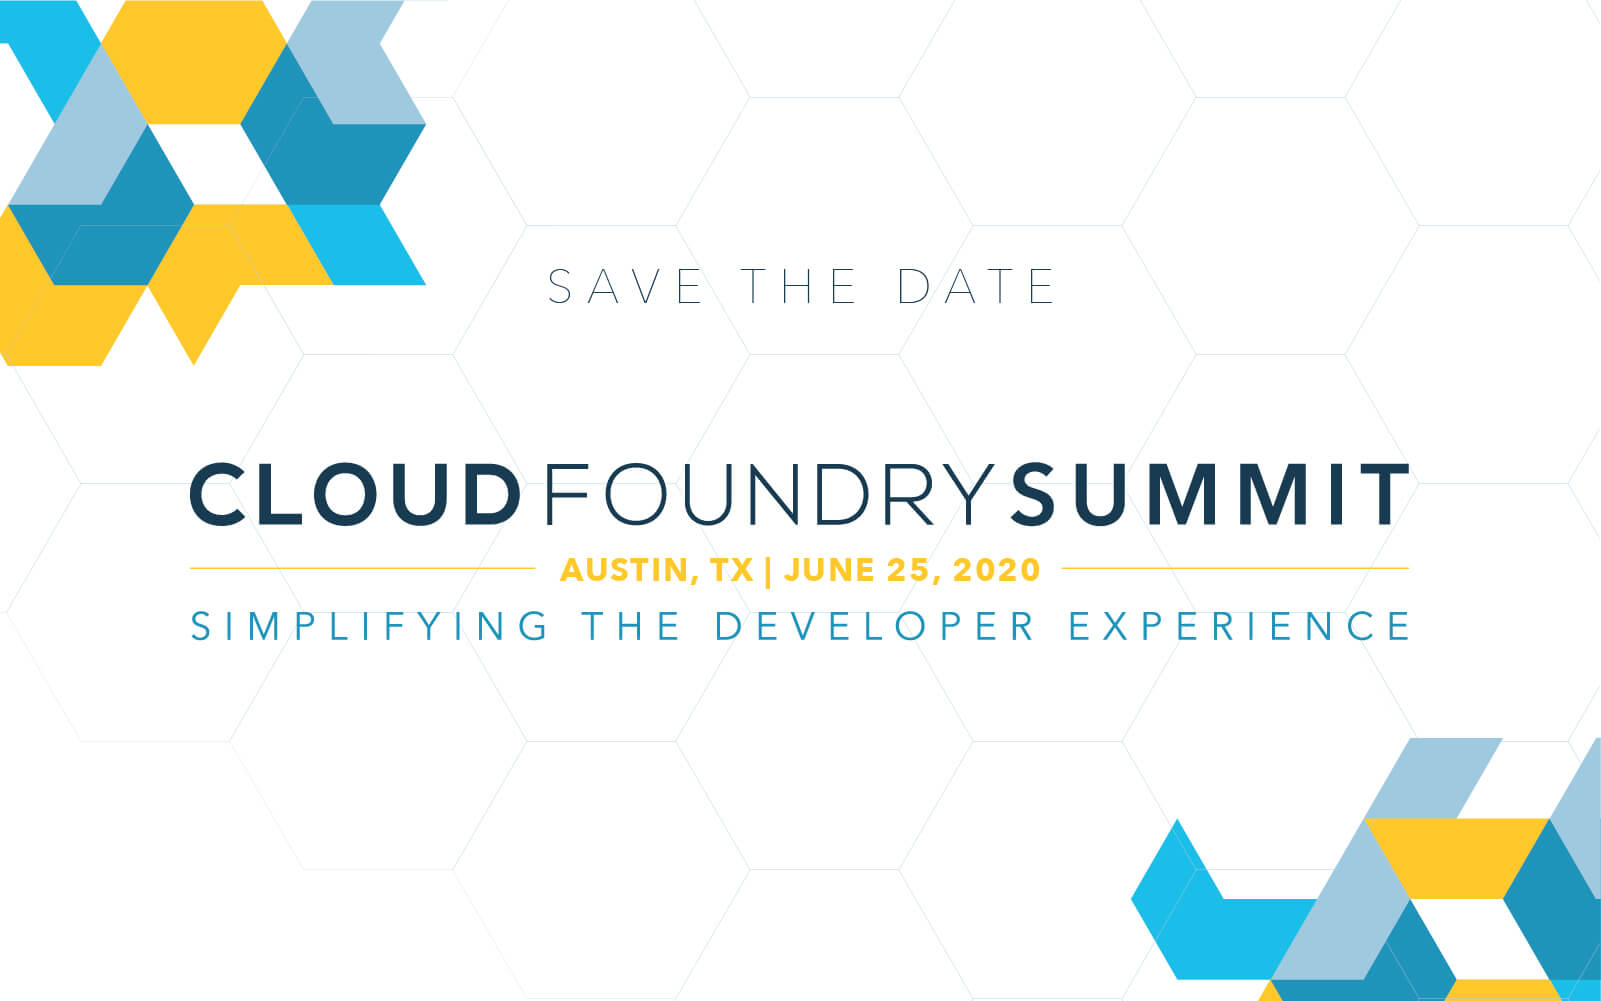 cloud foundry summit austin texas june 25 2020